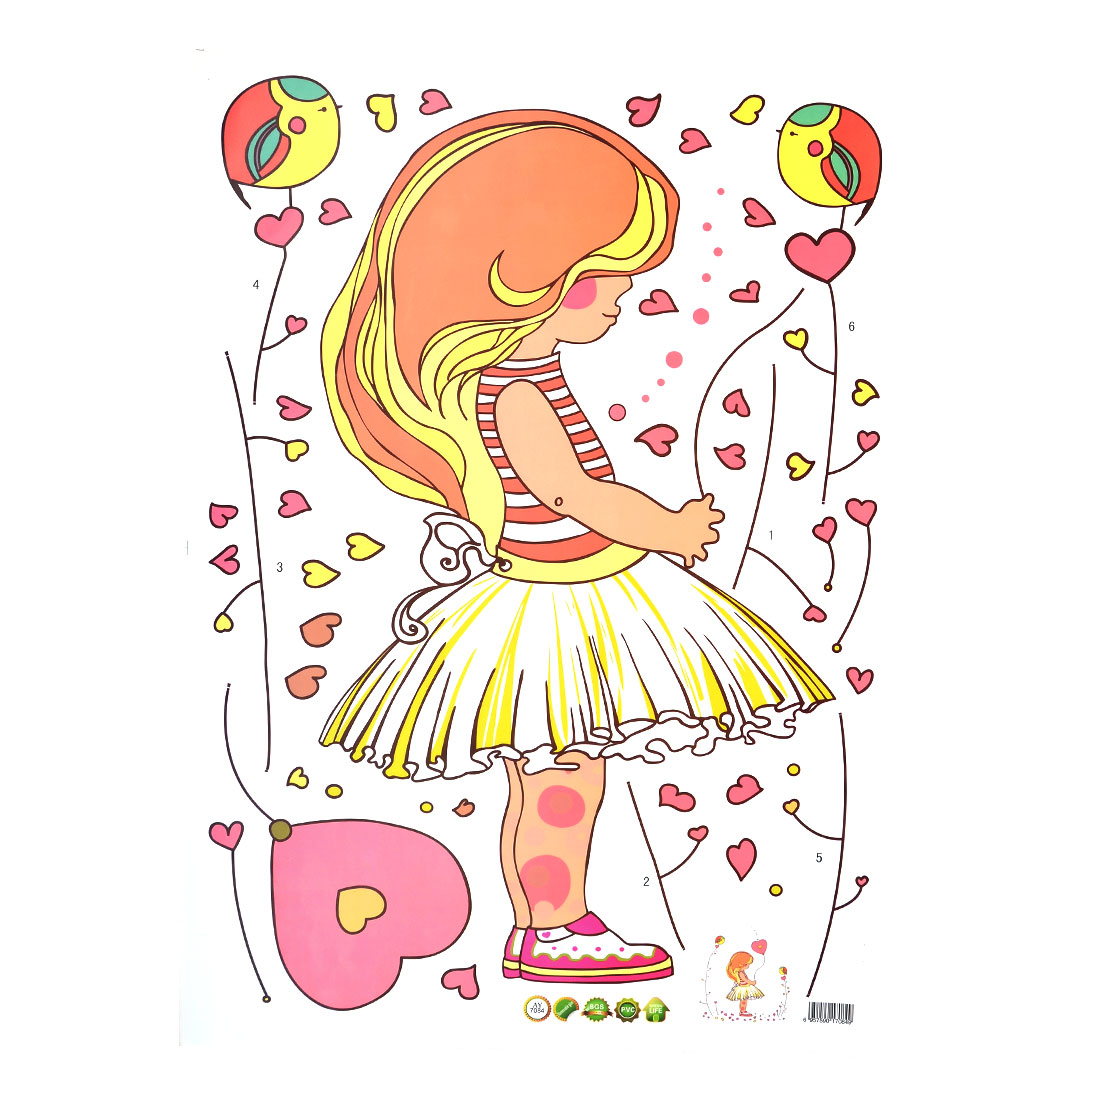 Unique Bargains Bedroom Cartoon Style Girl Pattern Wall Decor Sticker Decal Wallpaper 50 x 70cm